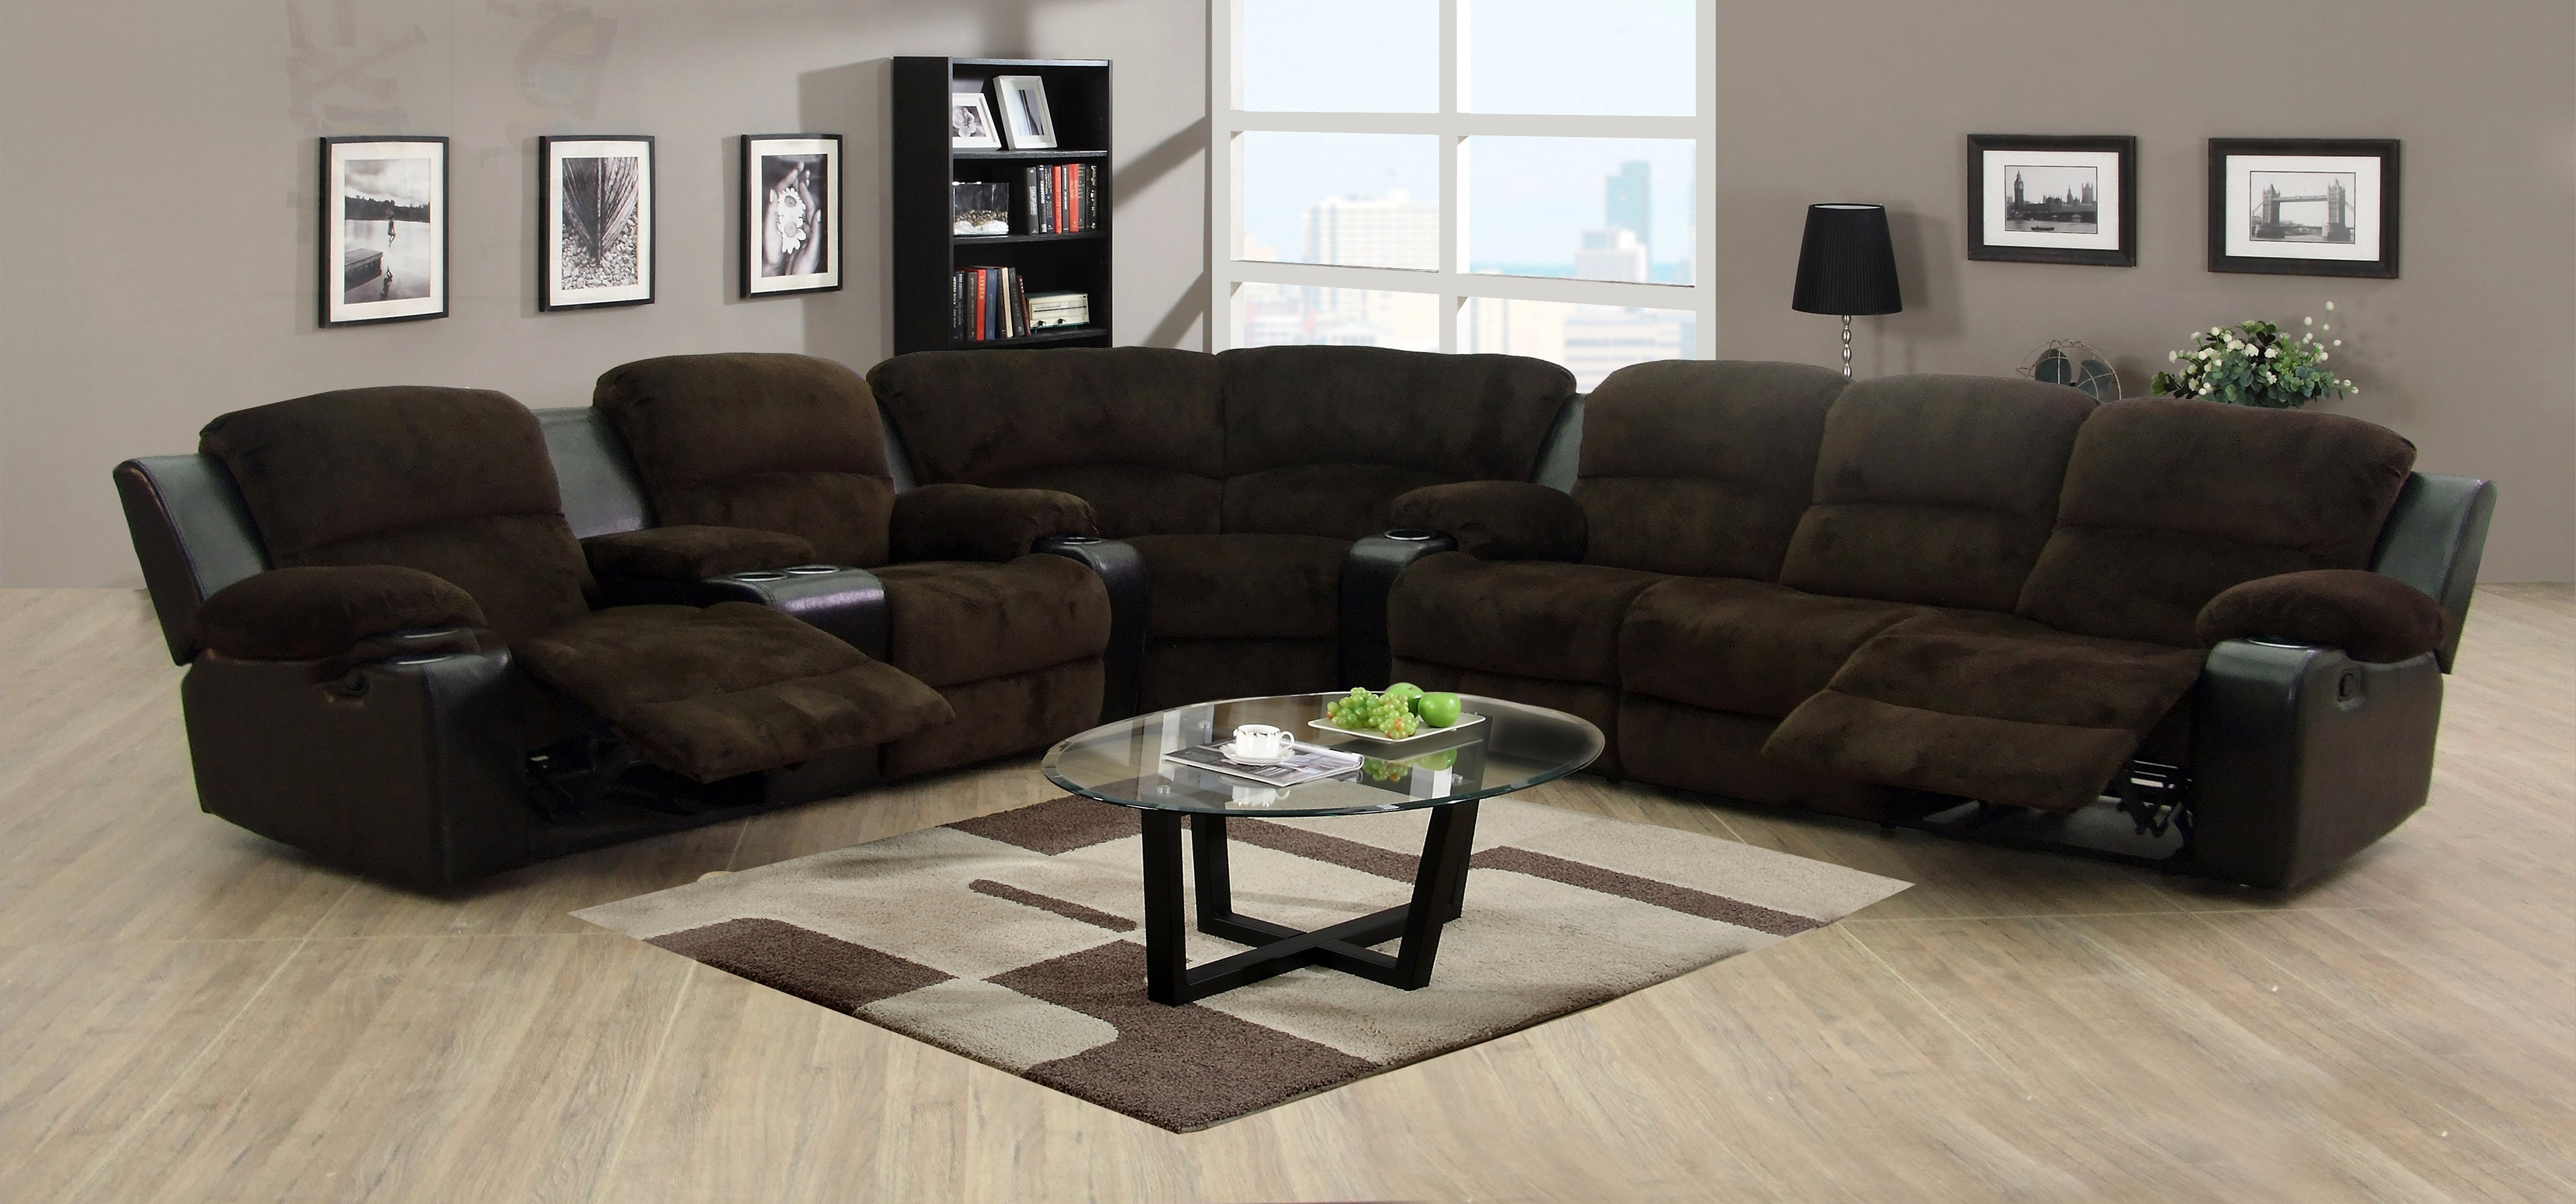 2018 Recliner Category : Sofa Recliners With Cup Holders Sectional Throughout Sectional Sofas In Toronto (View 2 of 15)